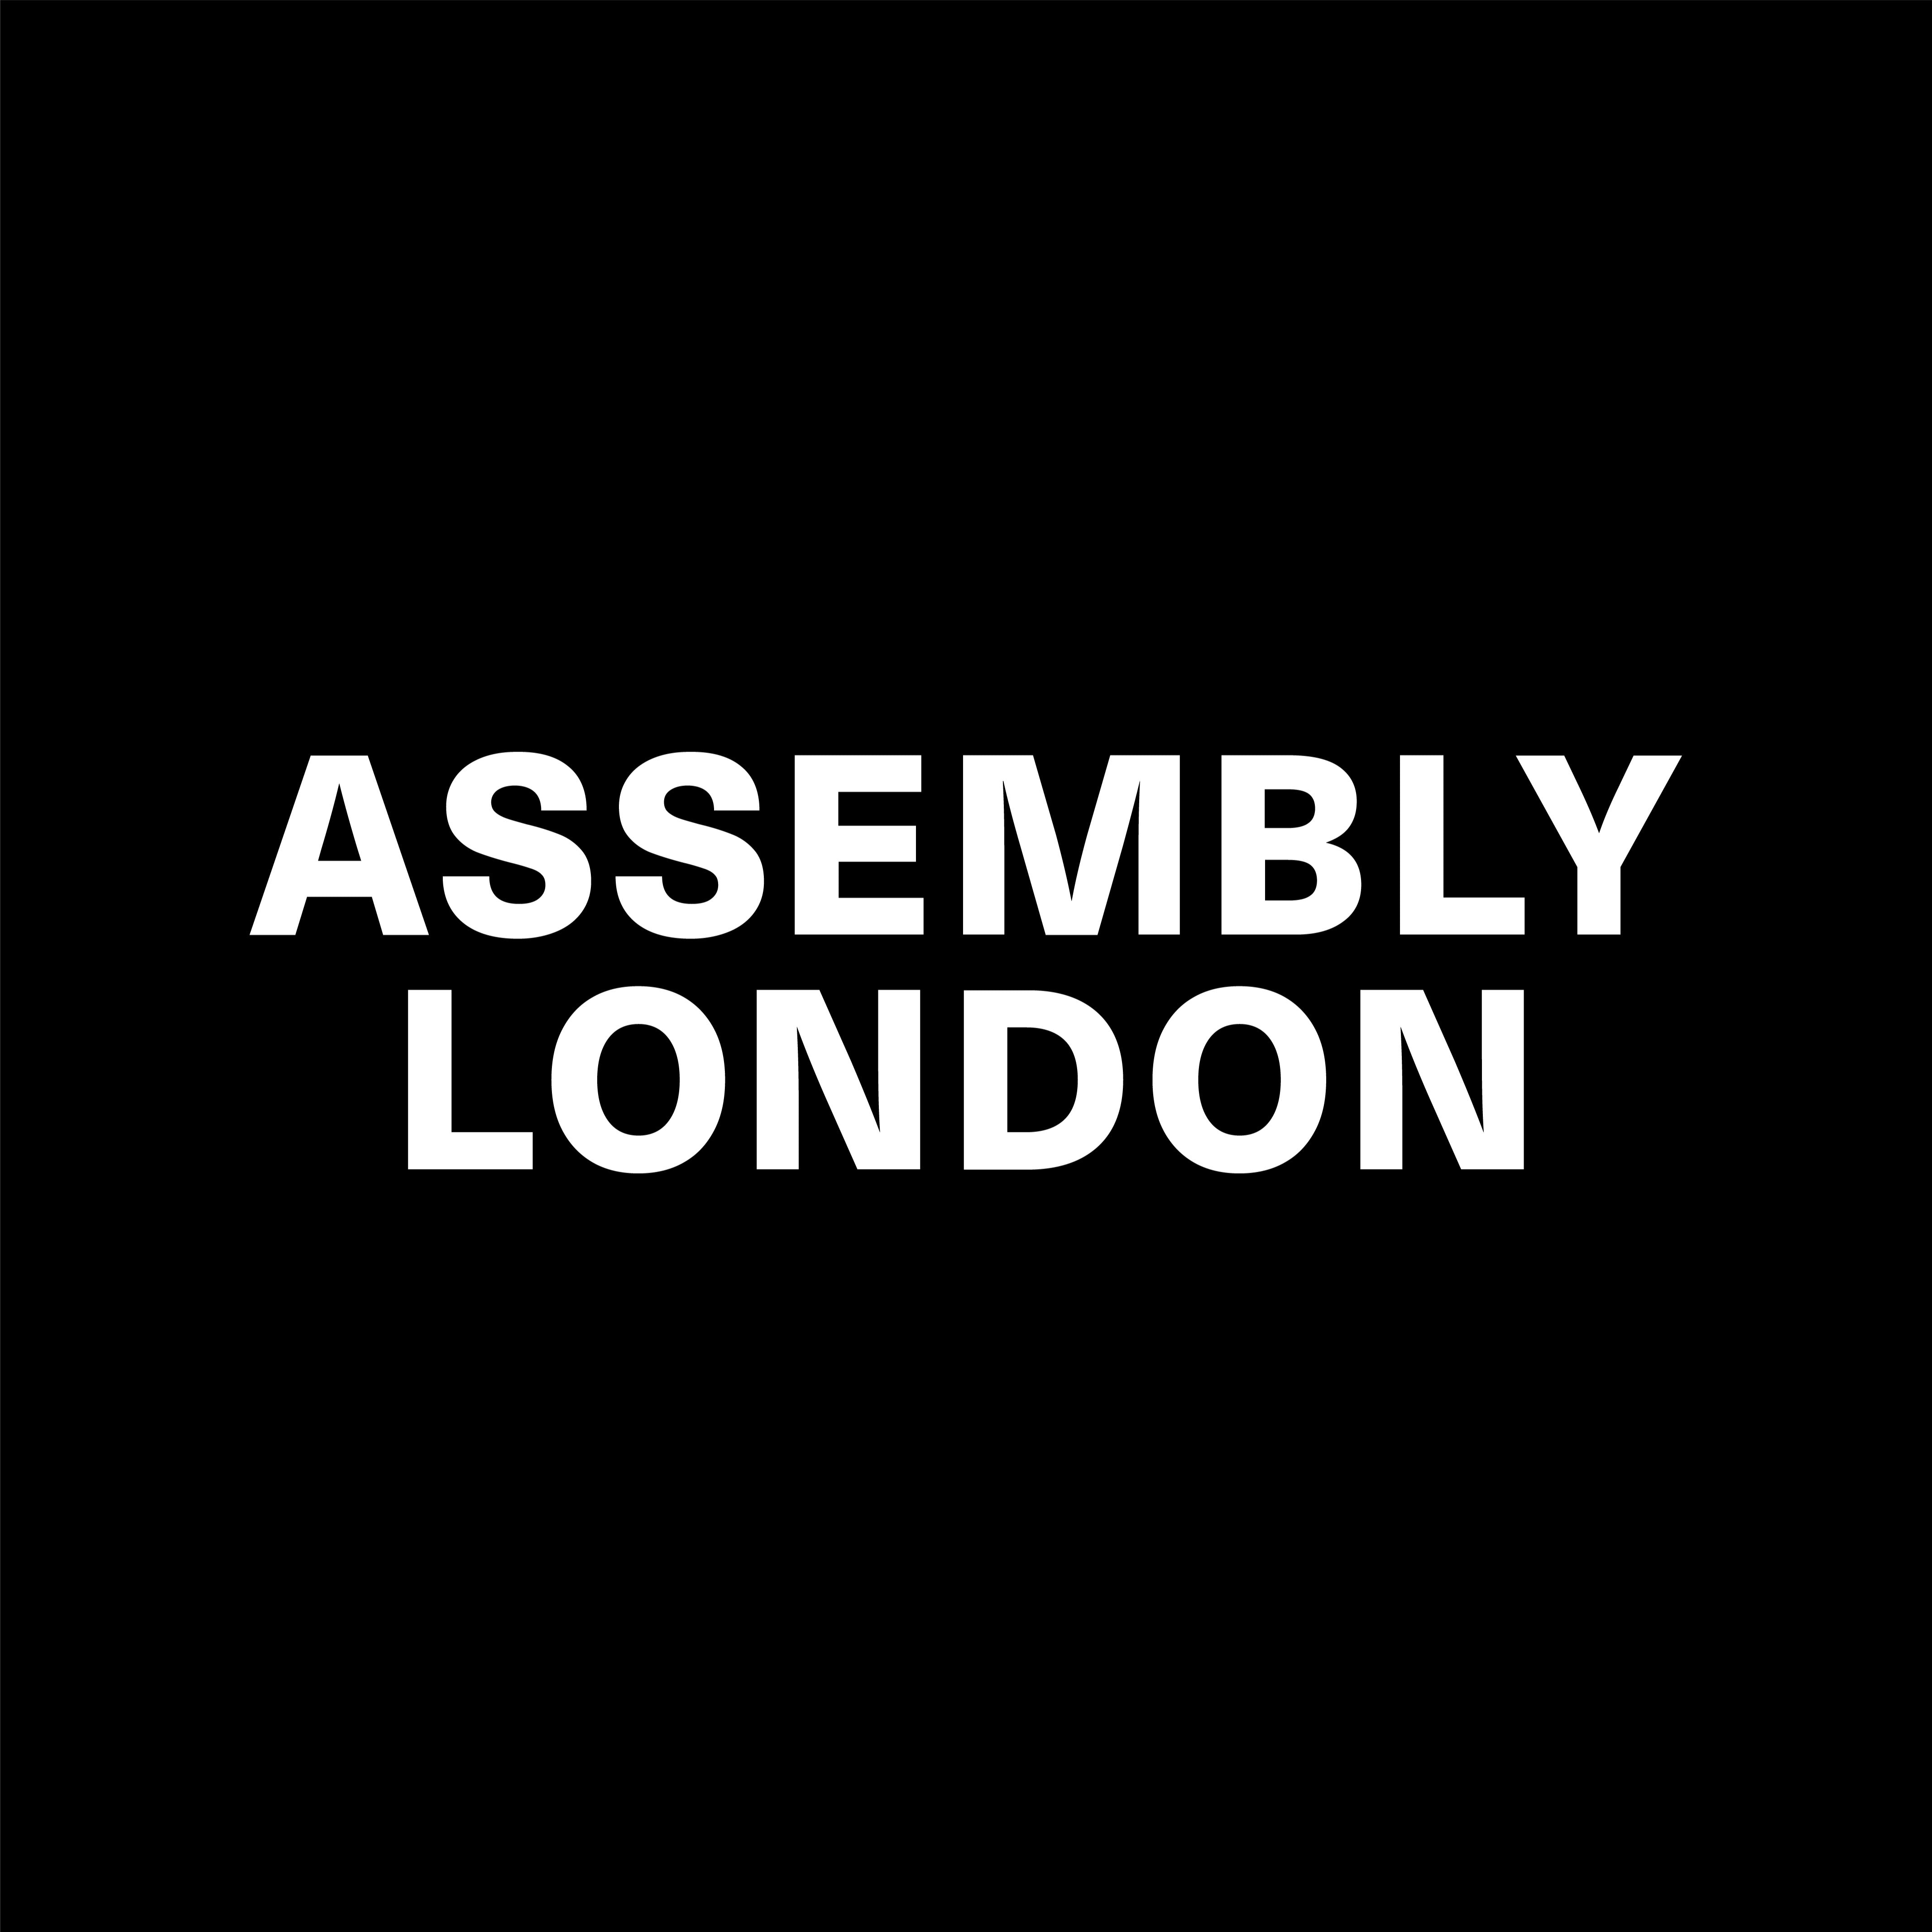 Assembly London company logo